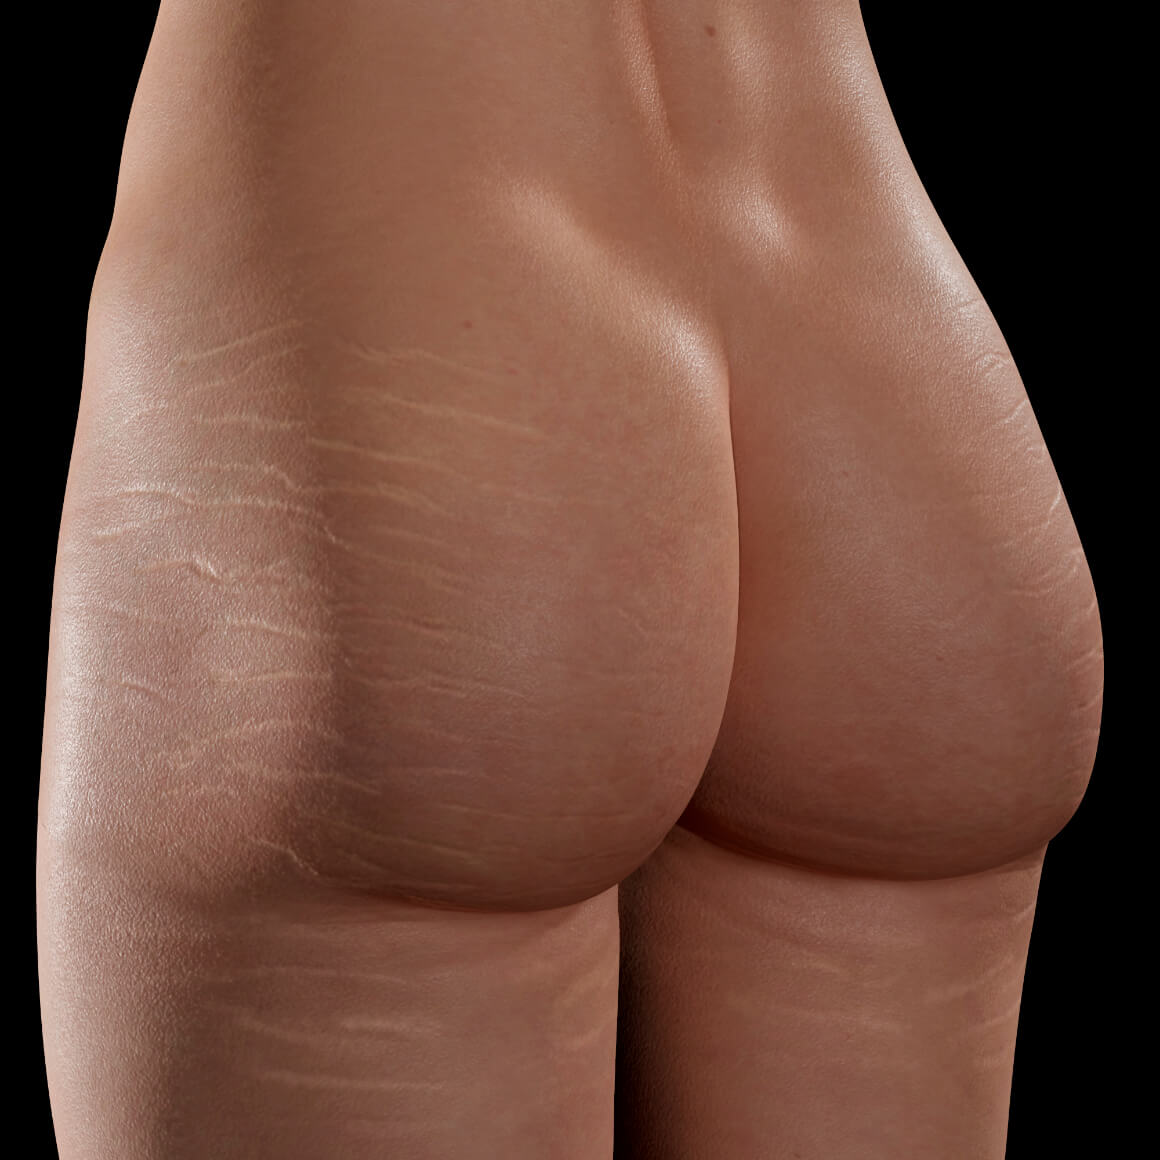 Angled Clinique Chloé female patient with stretch marks on her buttocks and thighs